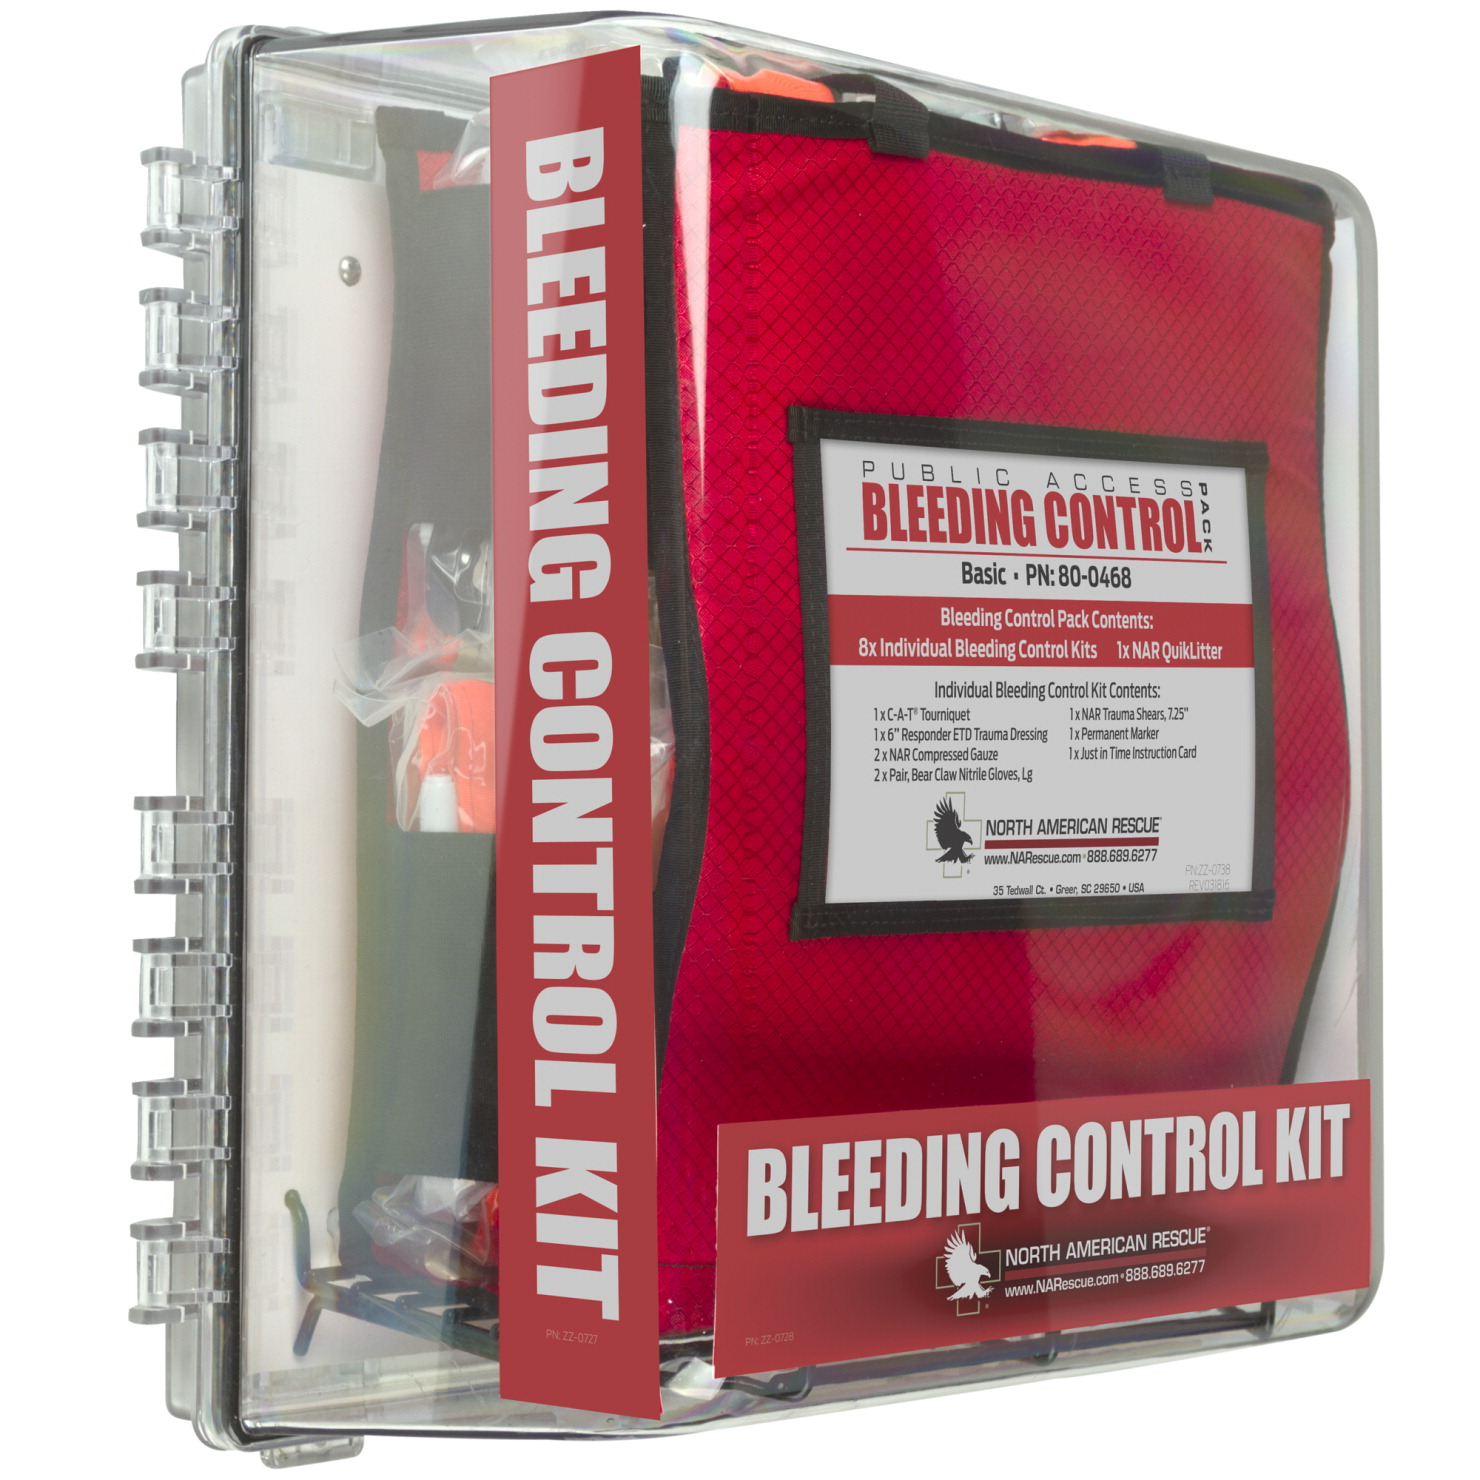 North American Rescue Public Access Bleeding Control, Basic W Cabinet